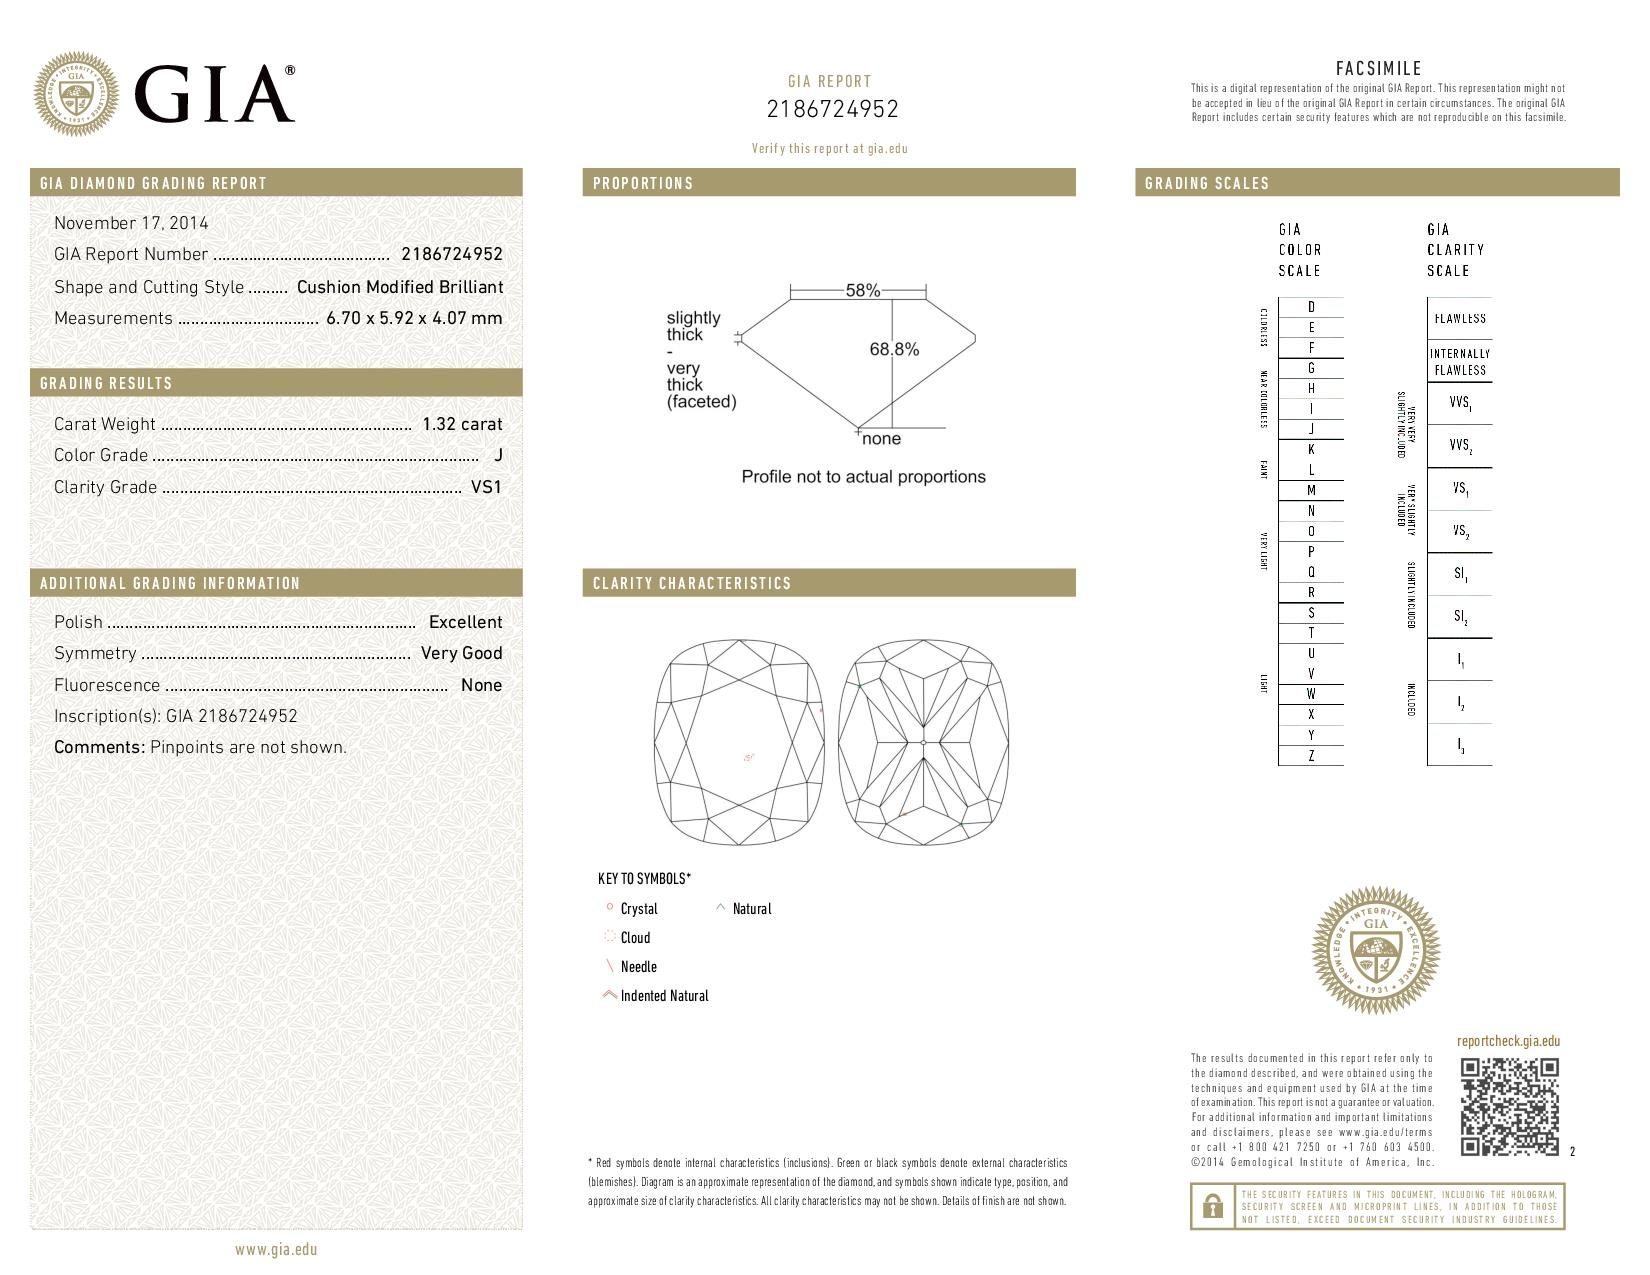 This is a 1.32 carat cushion shape, J color, VS1 clarity natural diamond accompanied by a GIA grading report.